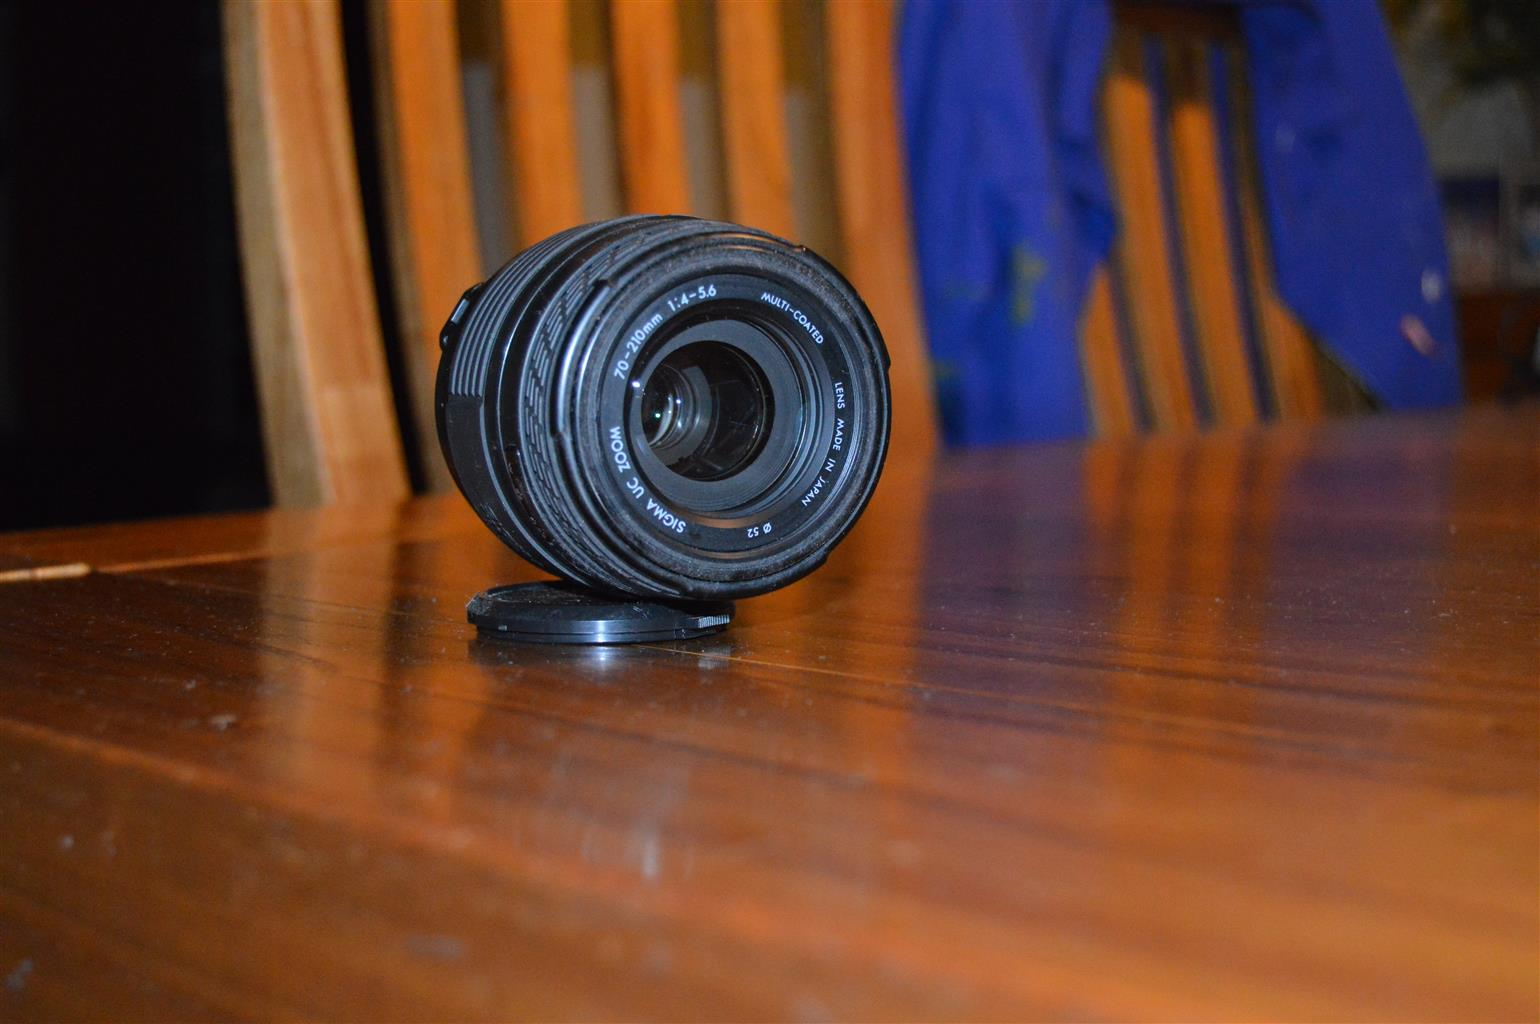 Sigma 70 - 210 mm lense to Fit Canon EOS Digital SLR Camera